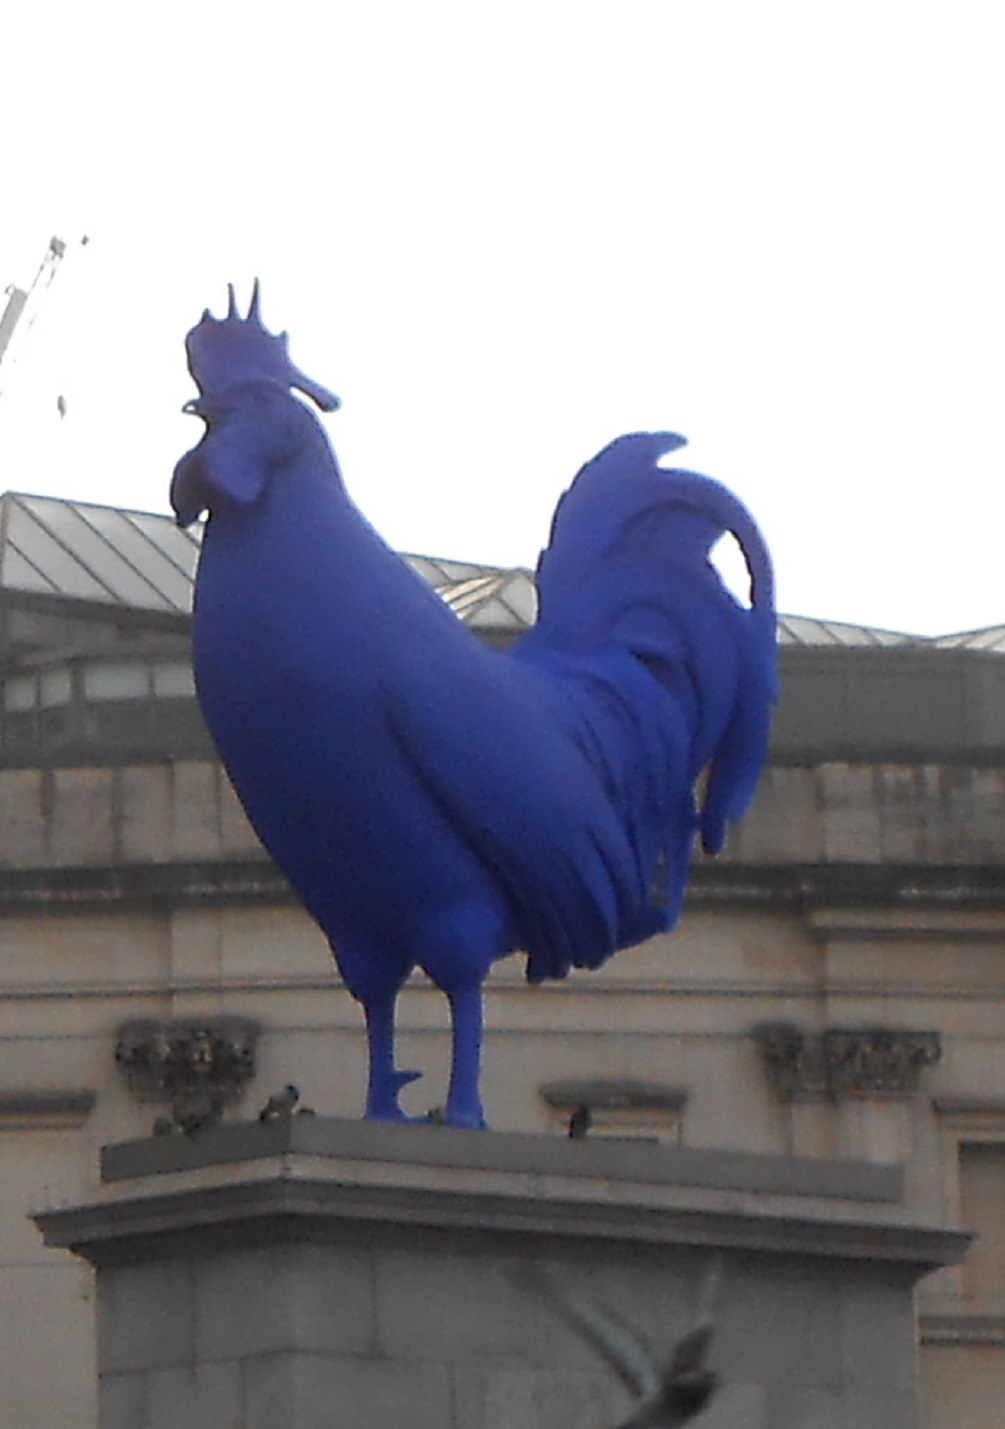 The blue rooster statue currently inhabiting Trafalgar Square.